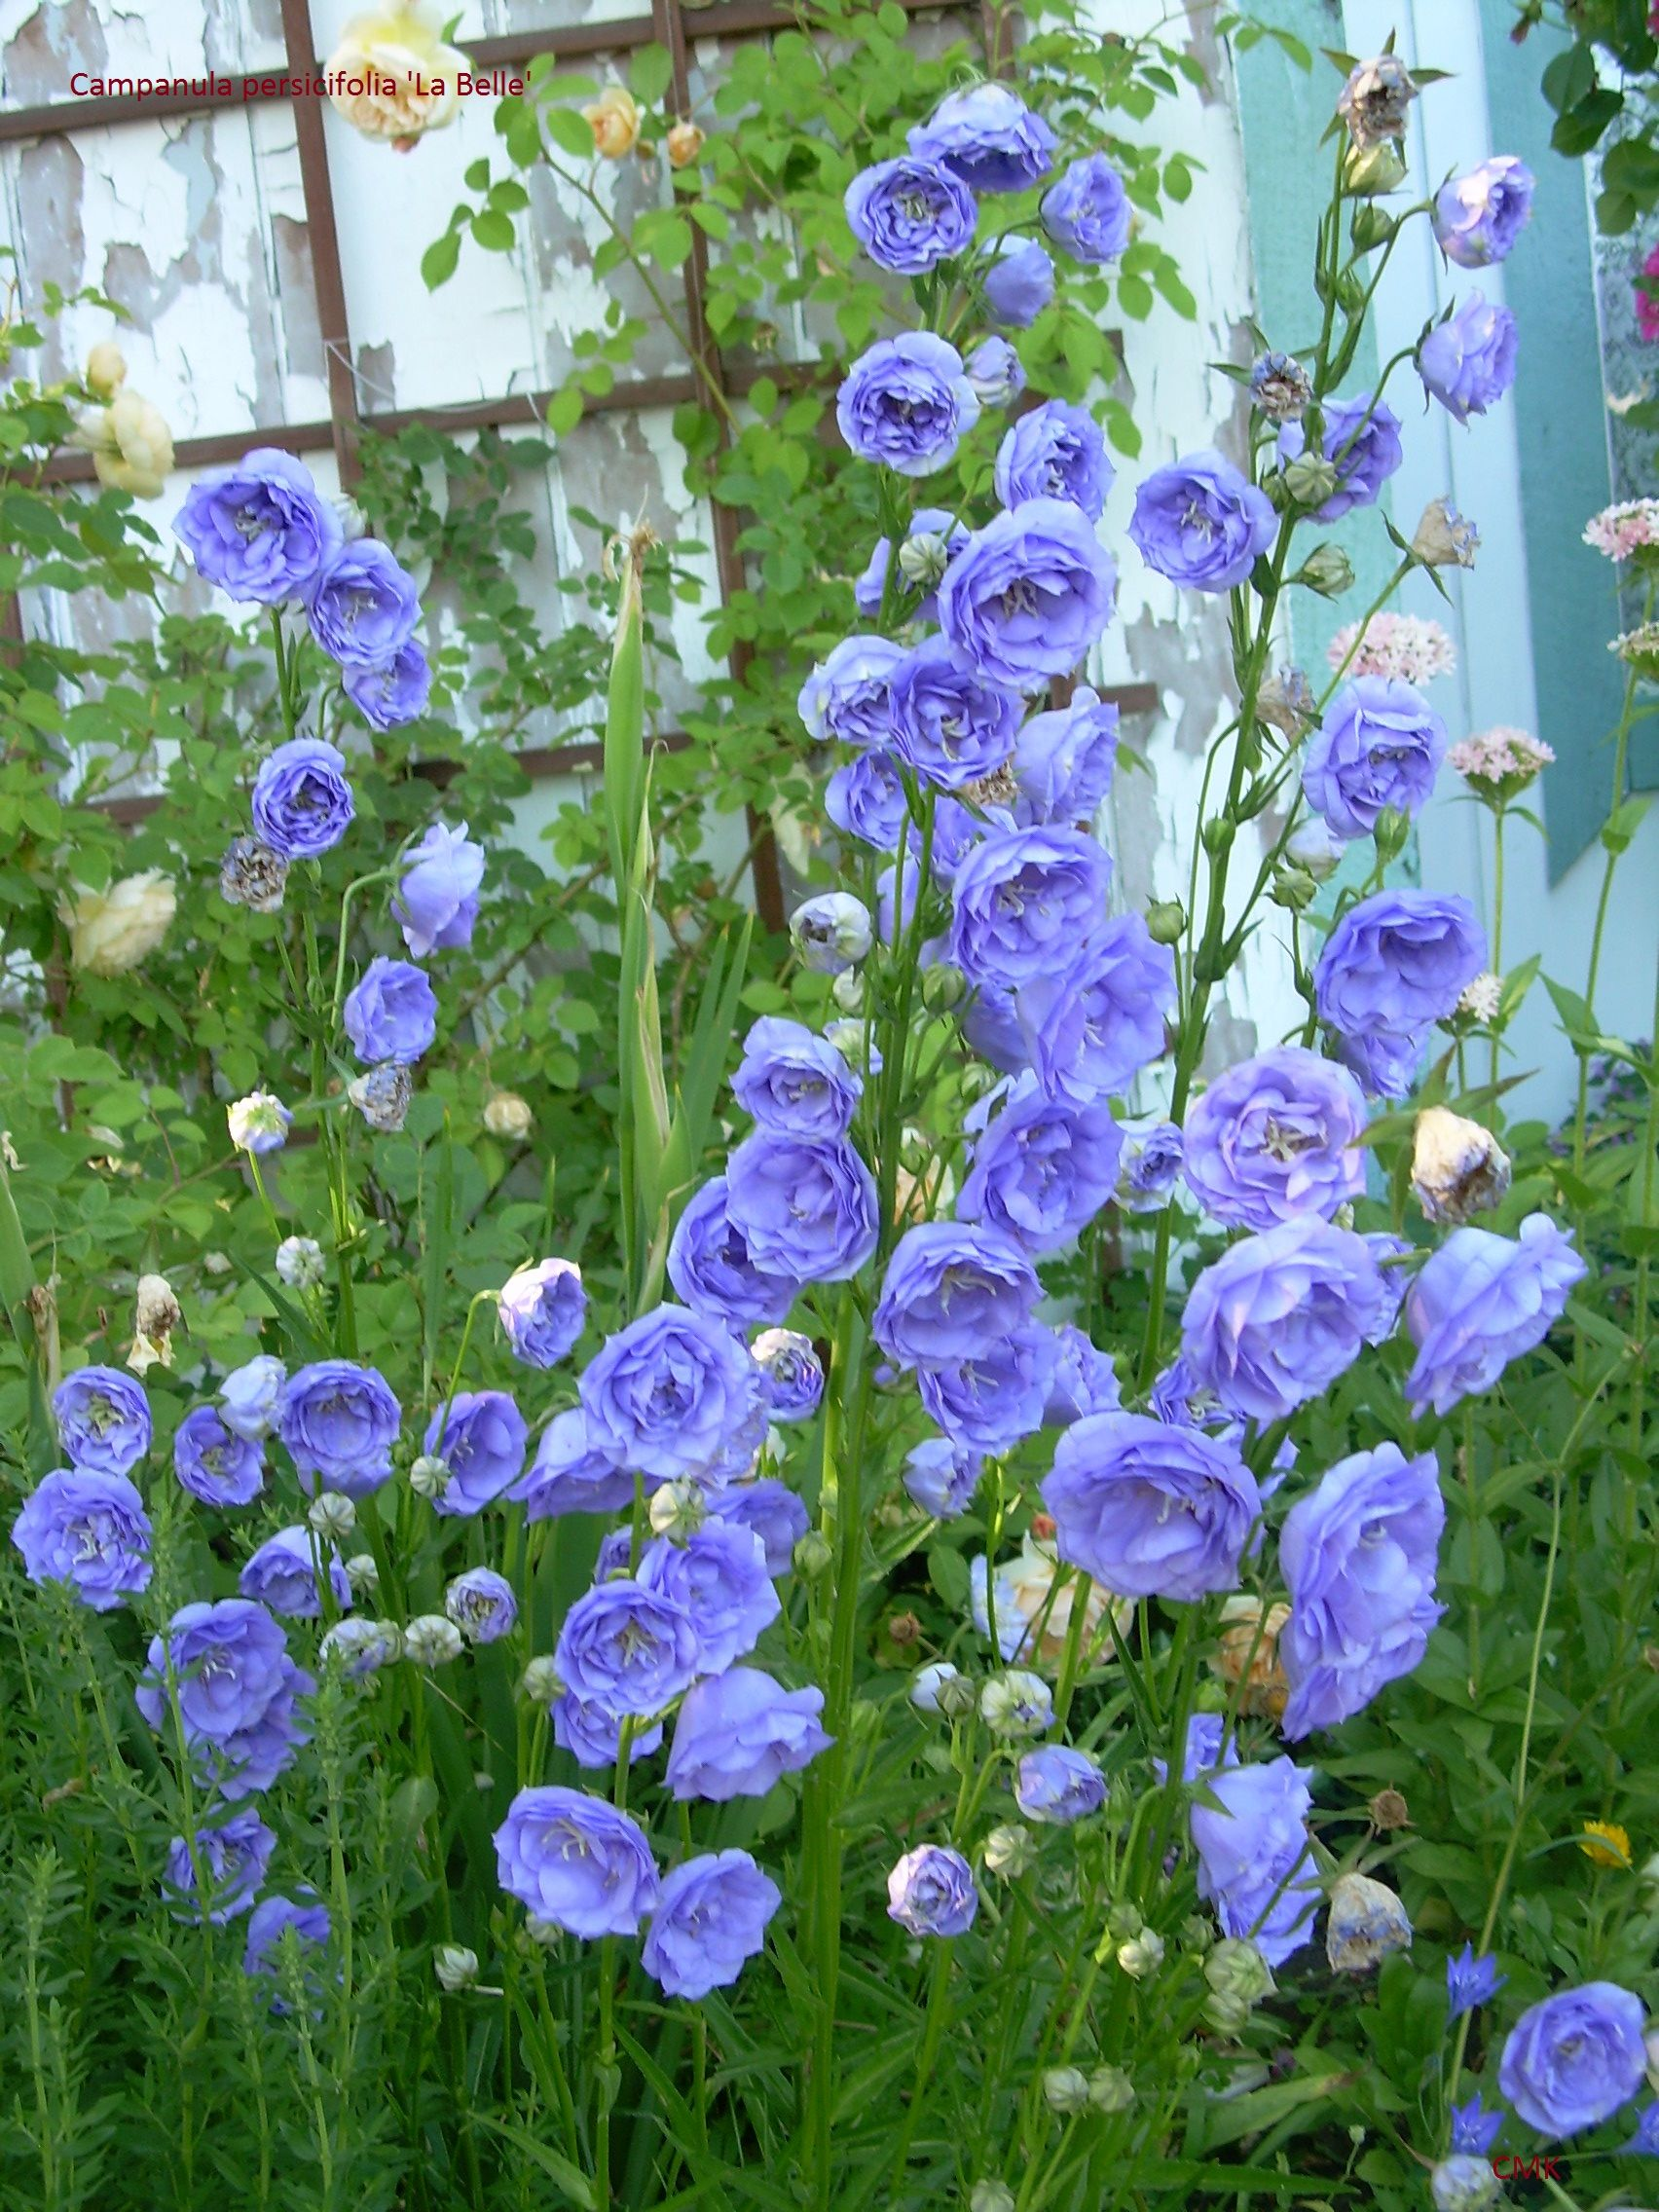 Love The Colour Of Sky And The Tender Fullness Of The Blossoms Campanula Persicifolia La Belle Early Spring Flowers Perennial Plants Spring Garden Flowers